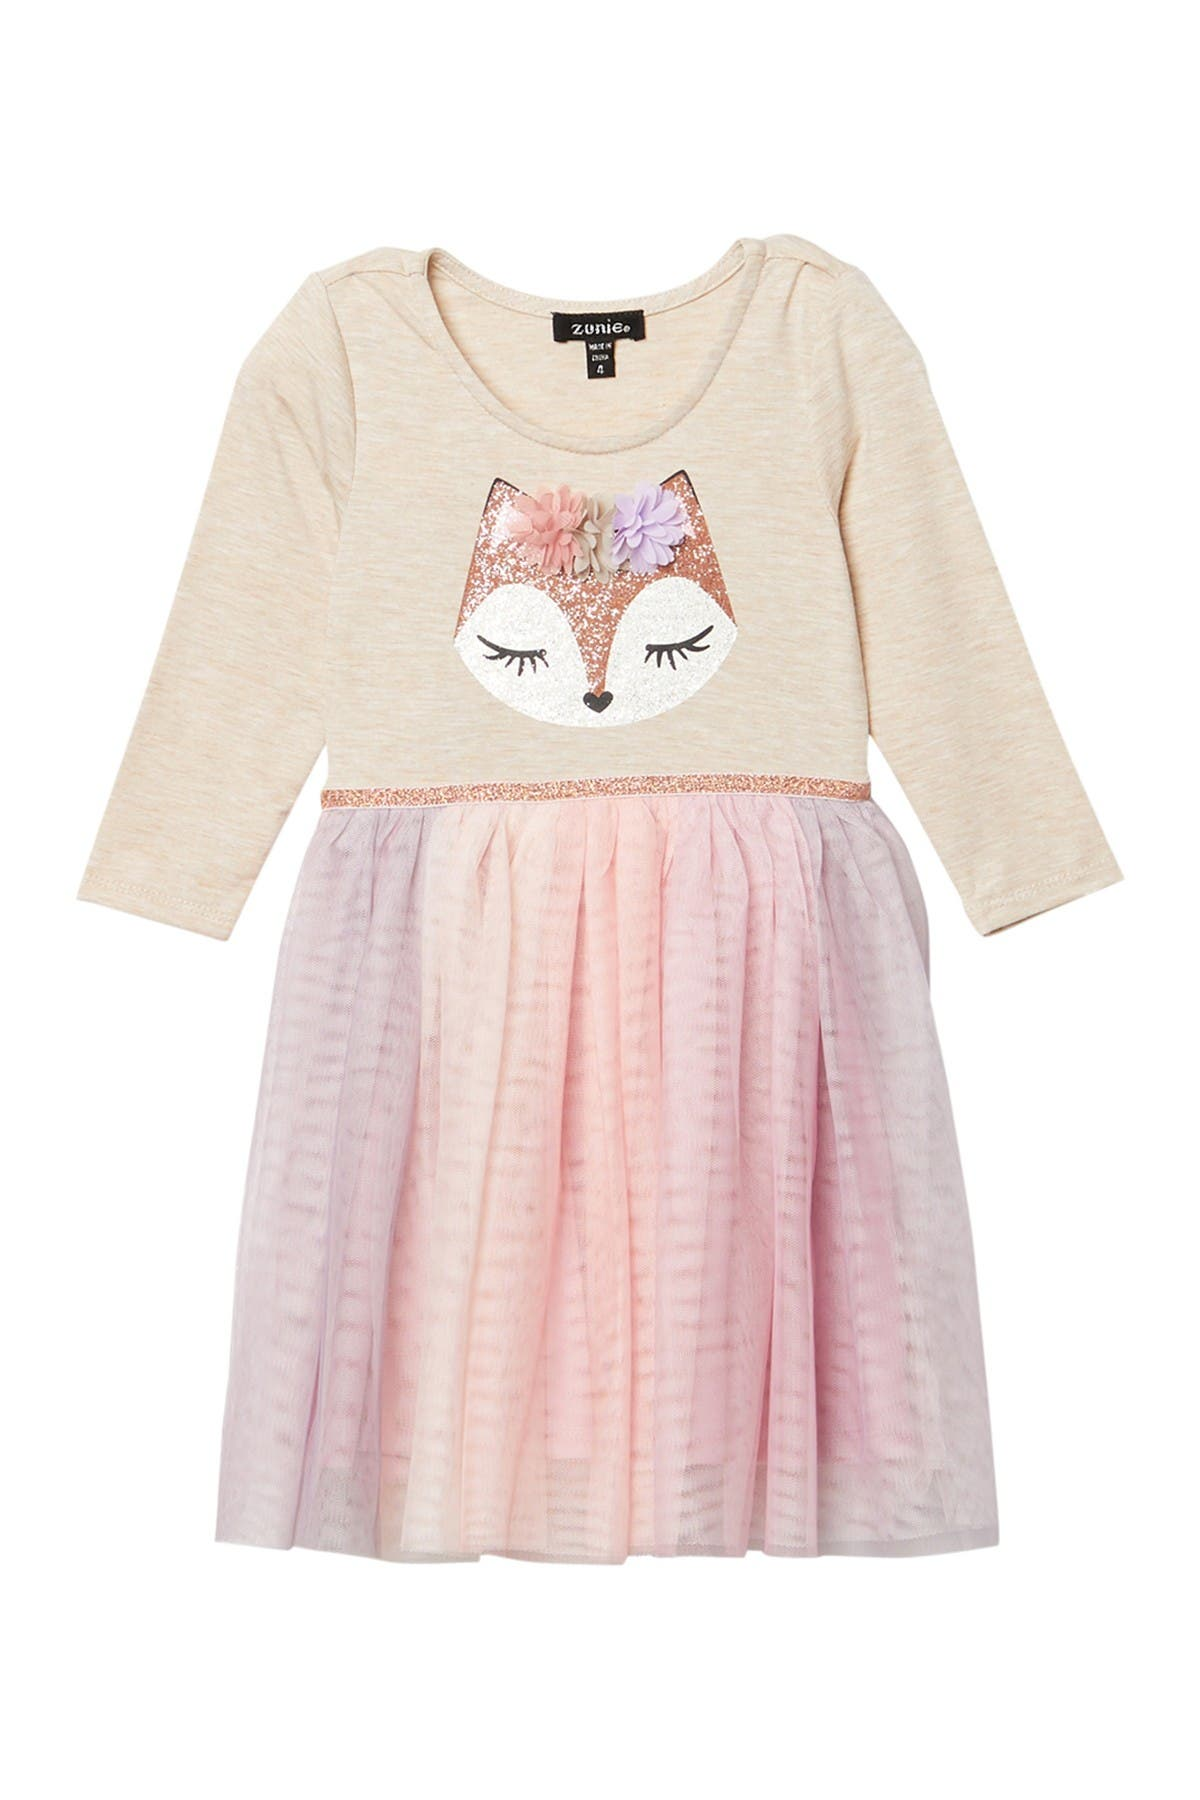 Image of Zunie 3/4 Sleeve Mesh Skirt Fox Dress